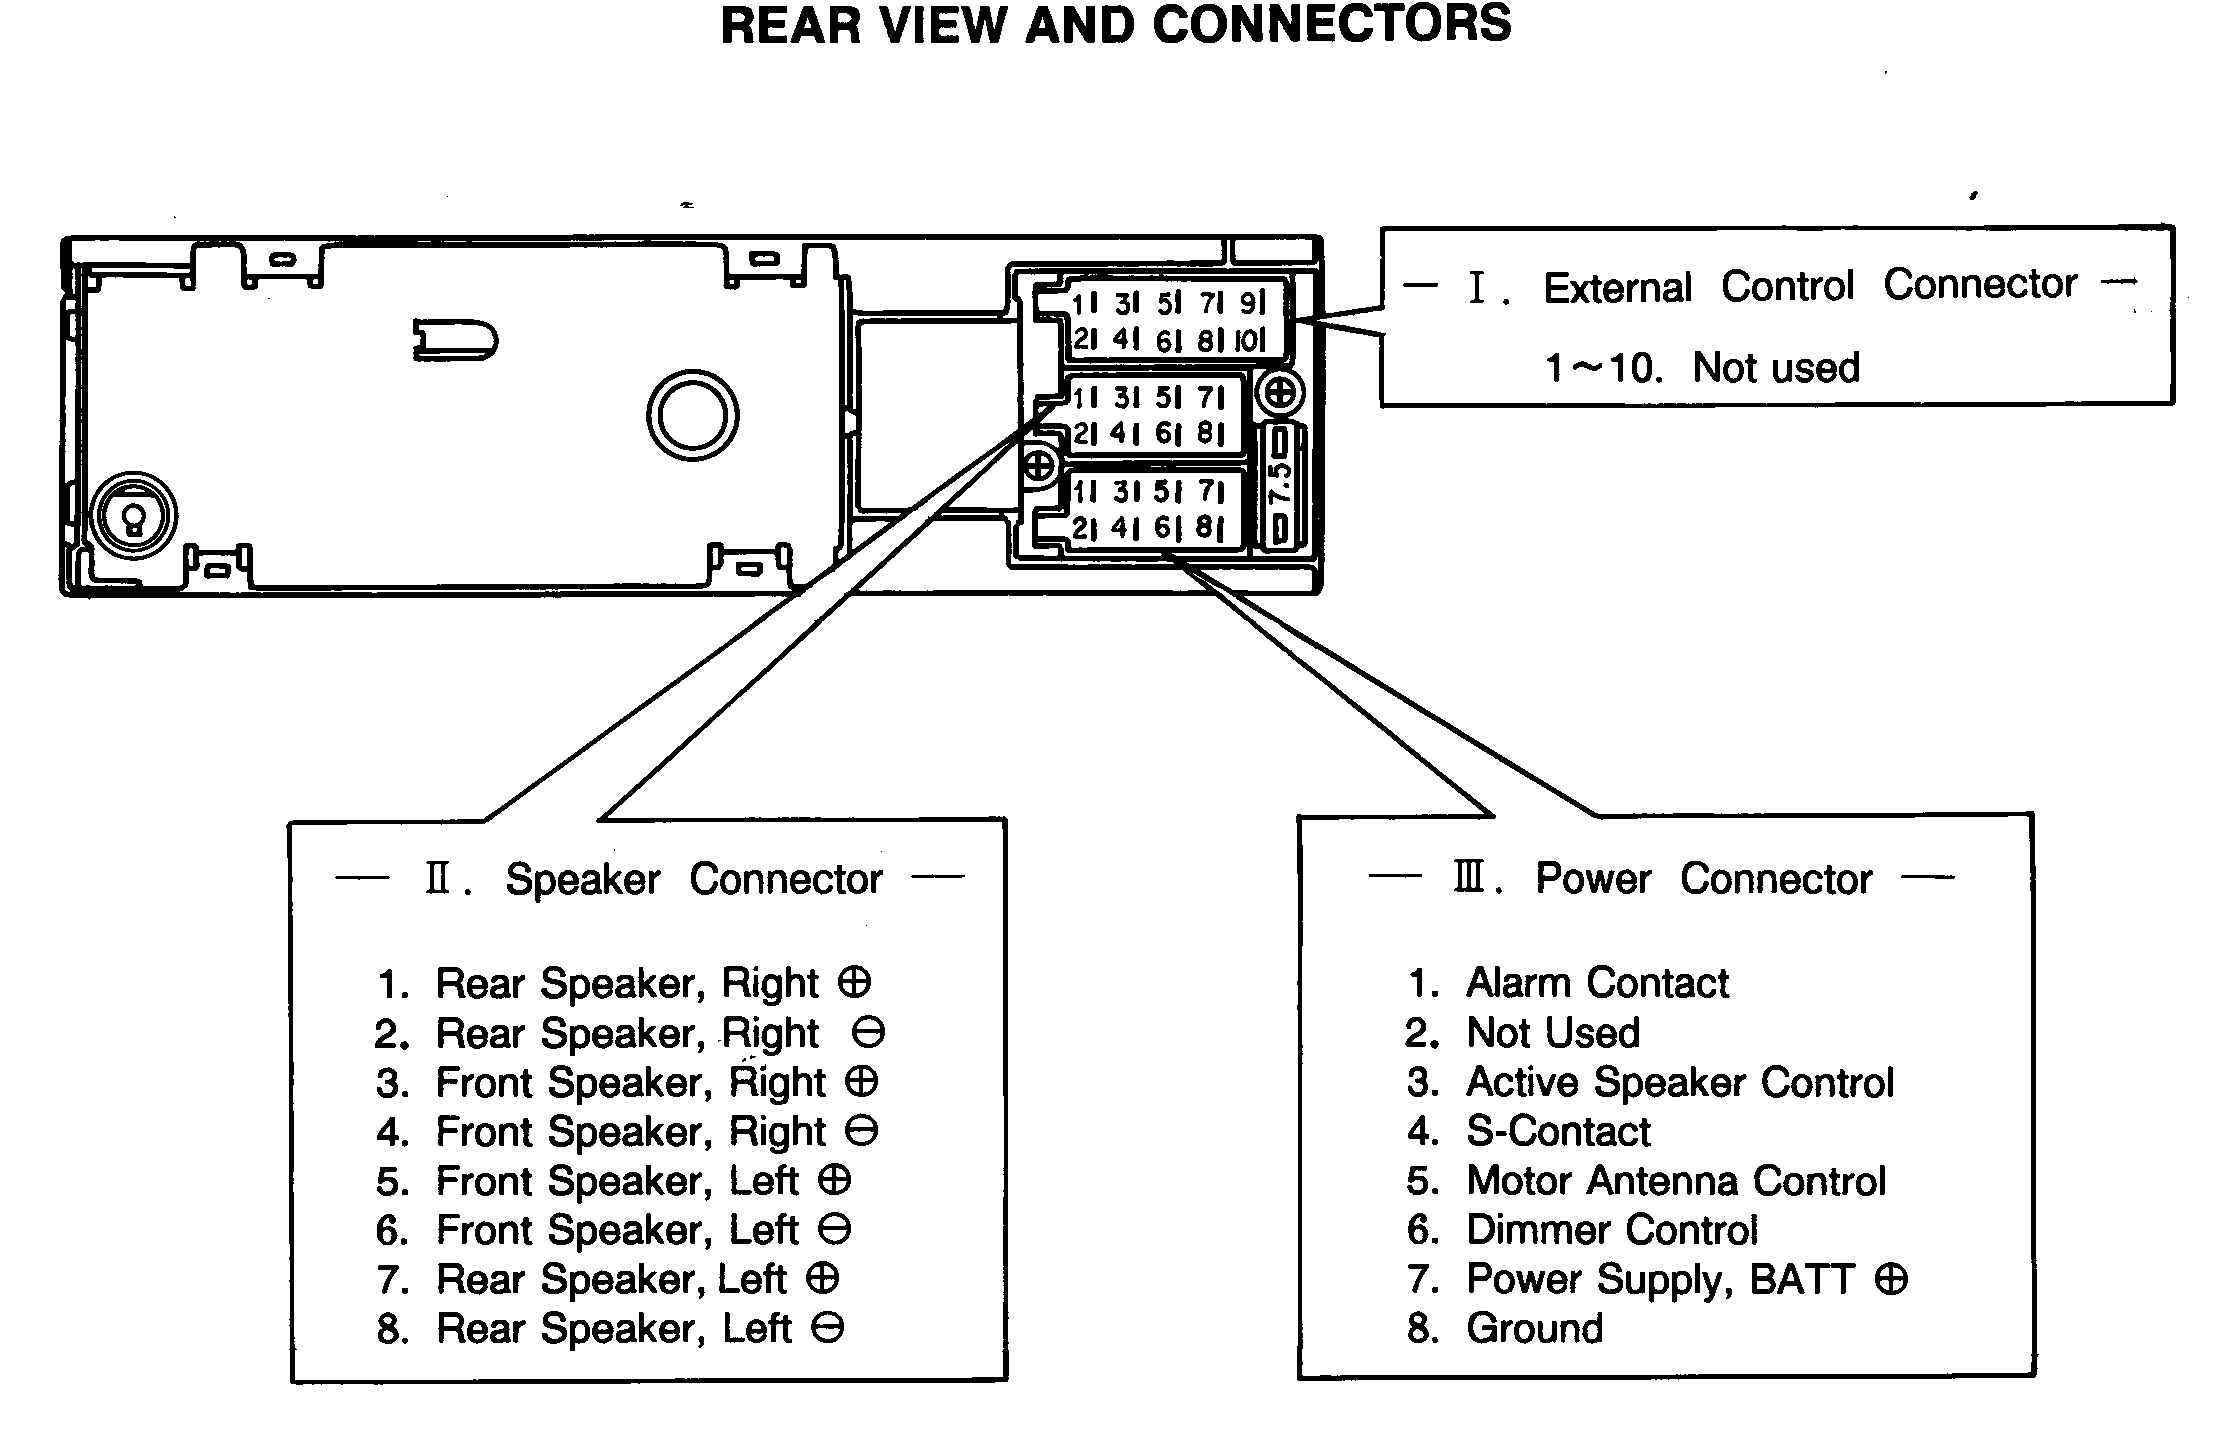 Car audio head unit wiring diagram wiring diagrams head unit wiring diagram unique wiring diagram image car audio wiring adapters stereo adapter kits auto arresting honda diagram car audio head unit wiring asfbconference2016 Image collections